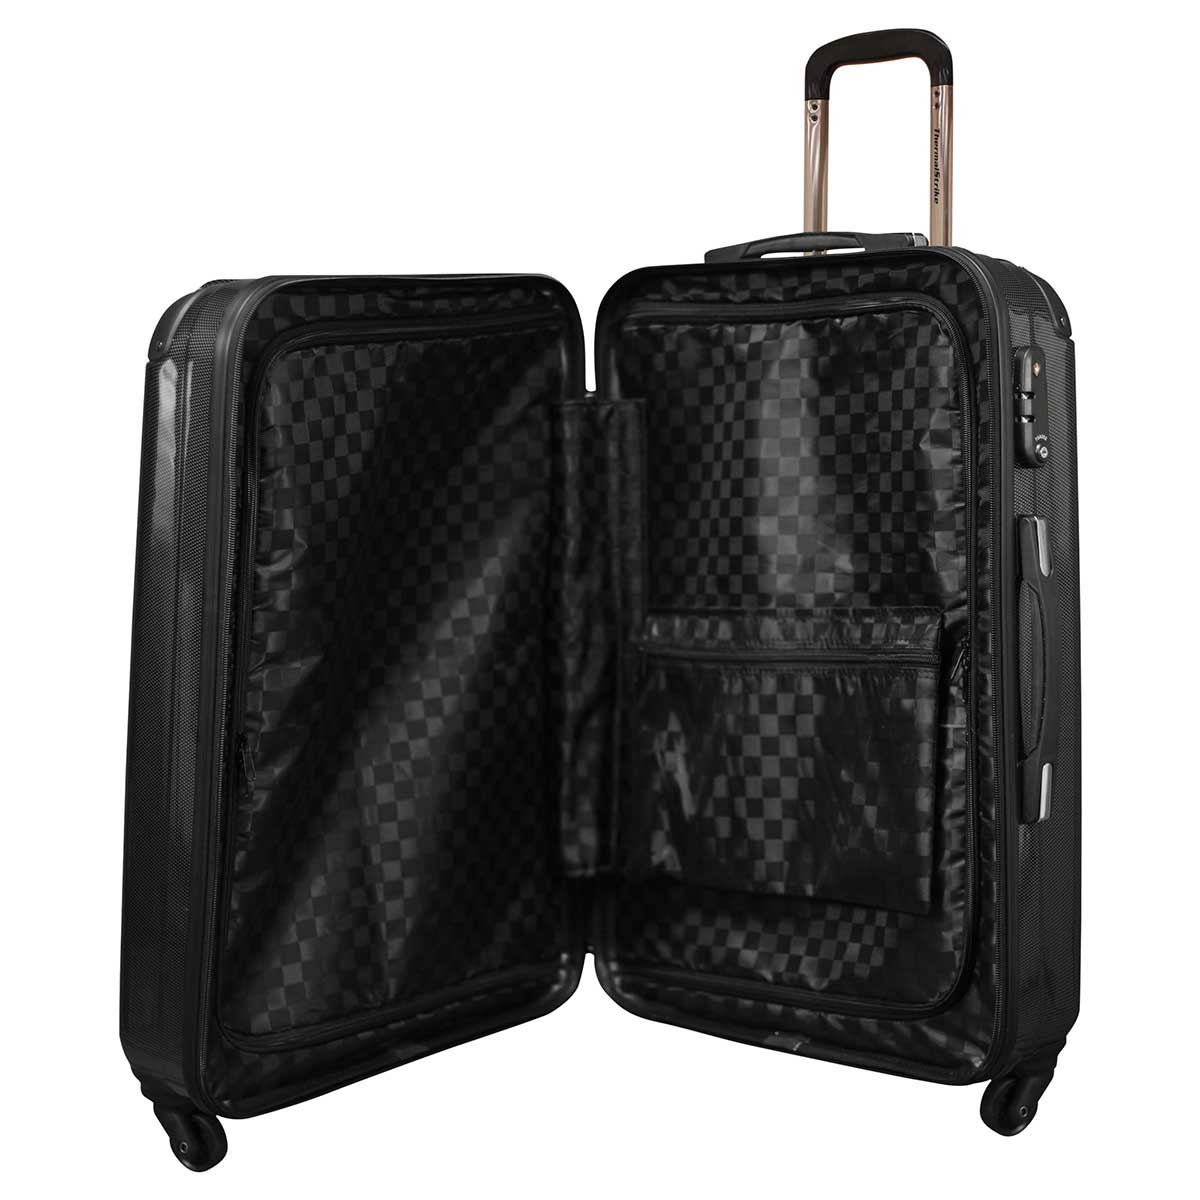 ThermalStrike luggage features large, interior zippered compartments as well as an interior pocket for easy ...